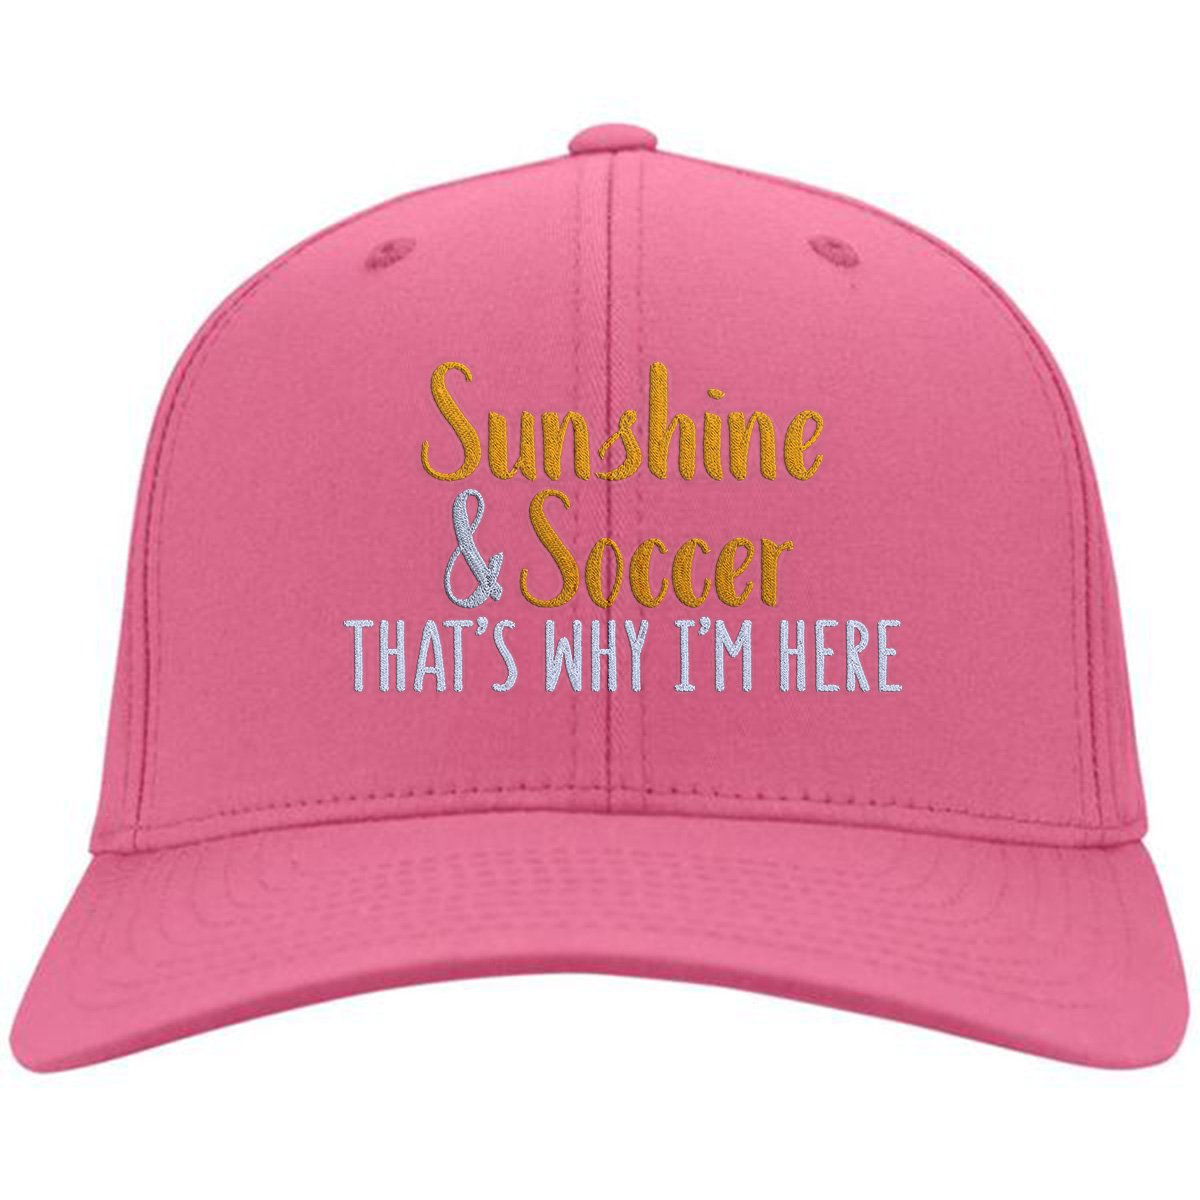 Sunshine & Soccer That's Why I'm Here Cotton Twill Hat